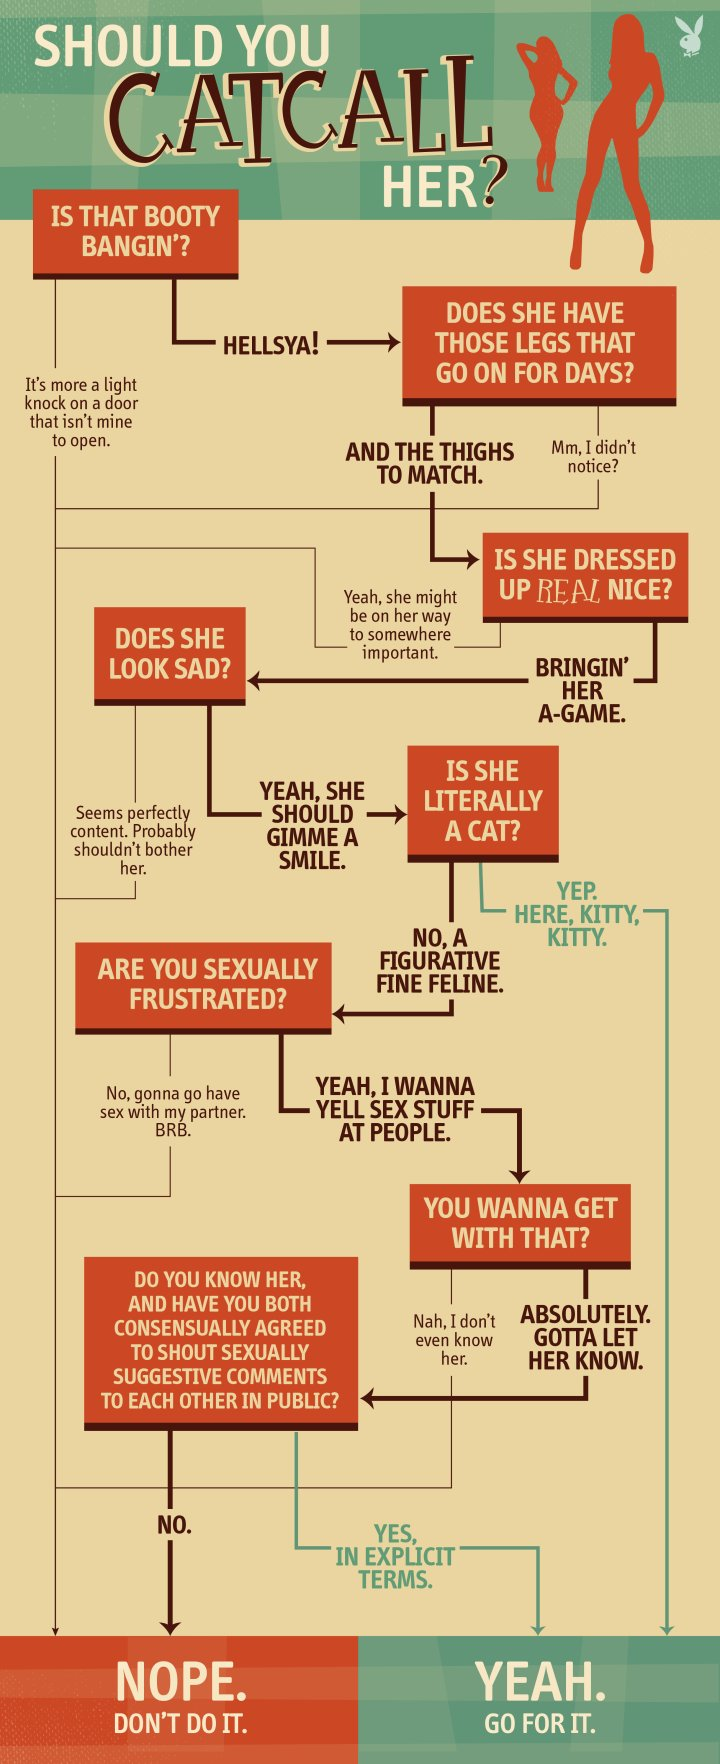 Flowchart: Should You Catcall Her? https://t.co/NmEE3xFWvx #saam #resist #endSH https://t.co/neX8KWFh2U